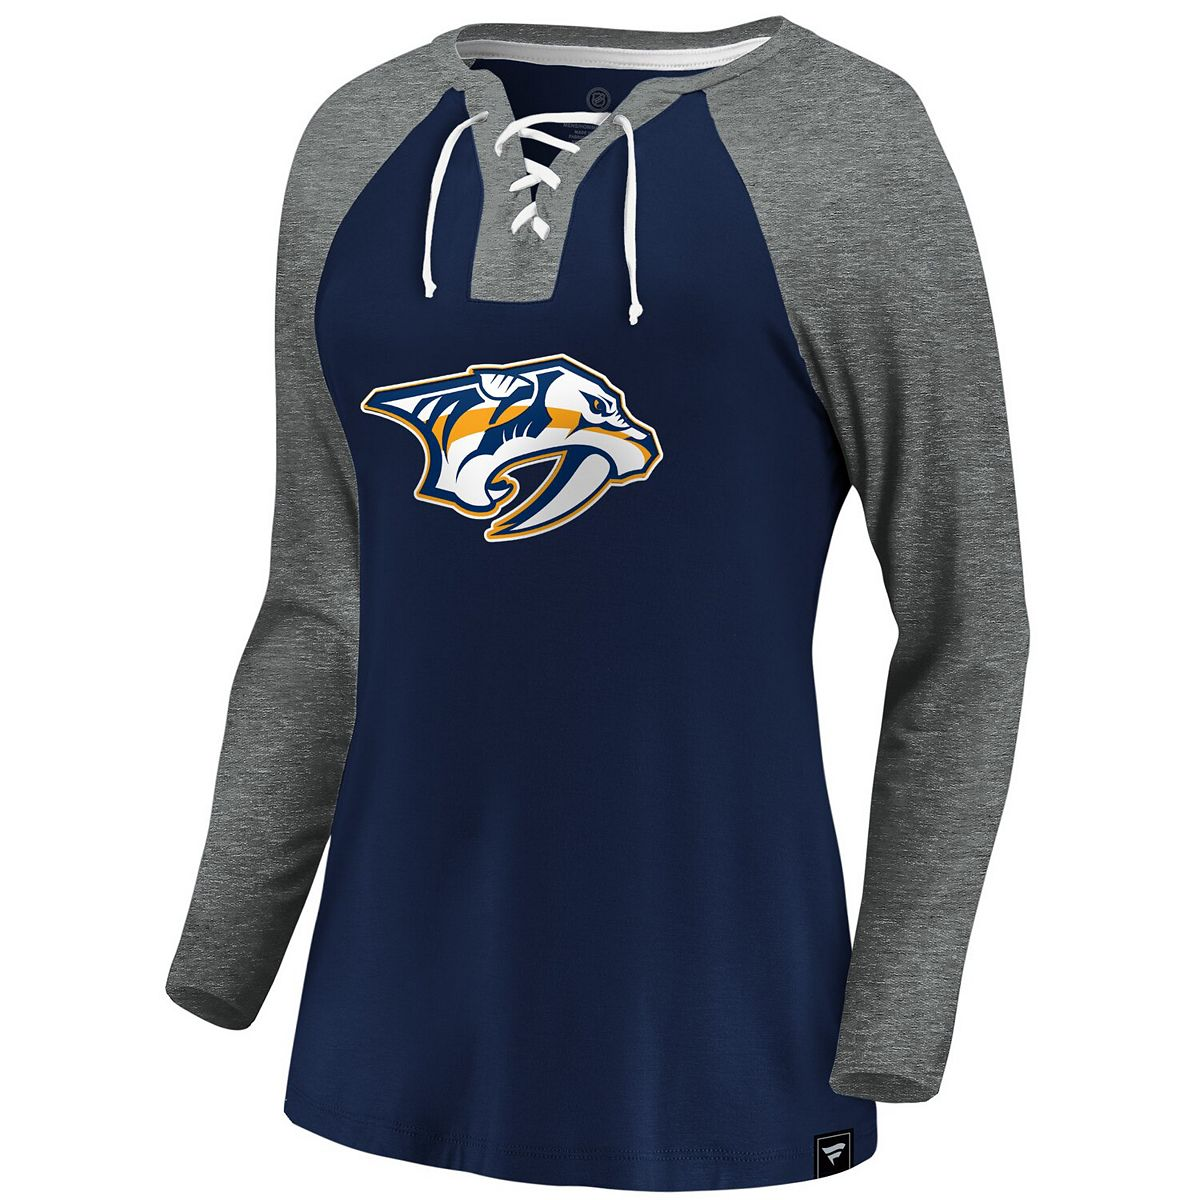 Women's Fanatics Branded Navy/Gray Nashville Predators Plus Size Break Out Play Lace-Up Long Sleeve V-Neck T-Shirt T6JFw